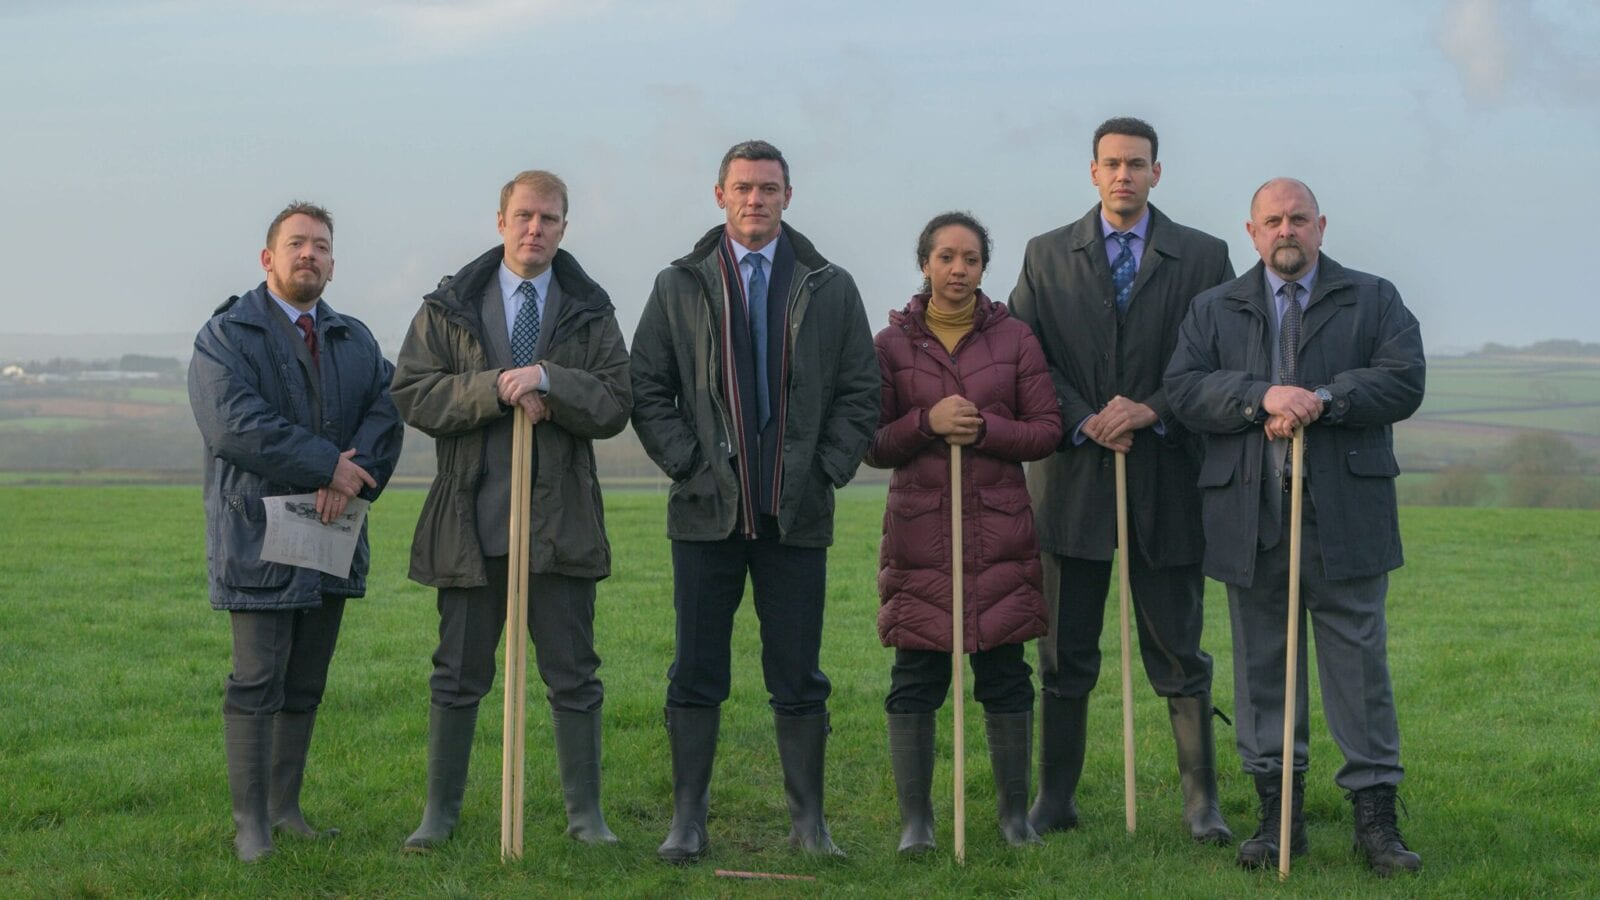 12 of the best new shows on TV to binge watch during lockdown, The Manc